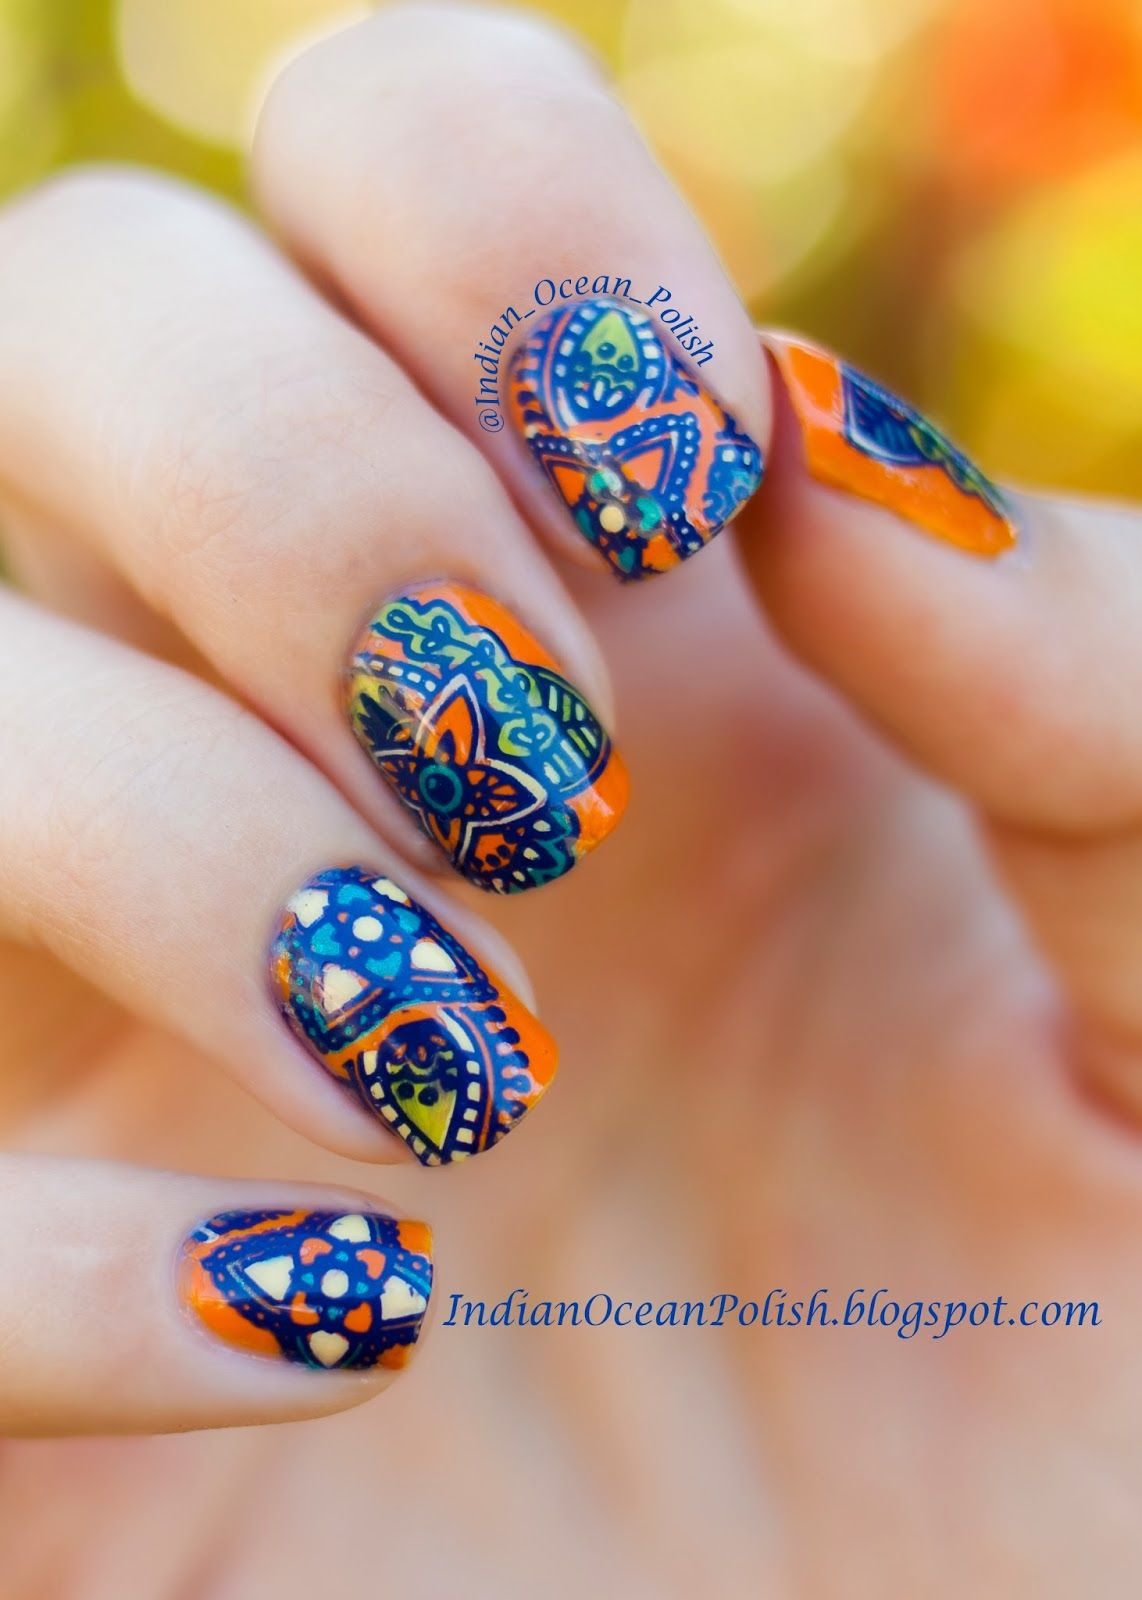 Indian Ocean Polish: Stained Glass Homemade Nail Decals With MoYou ...